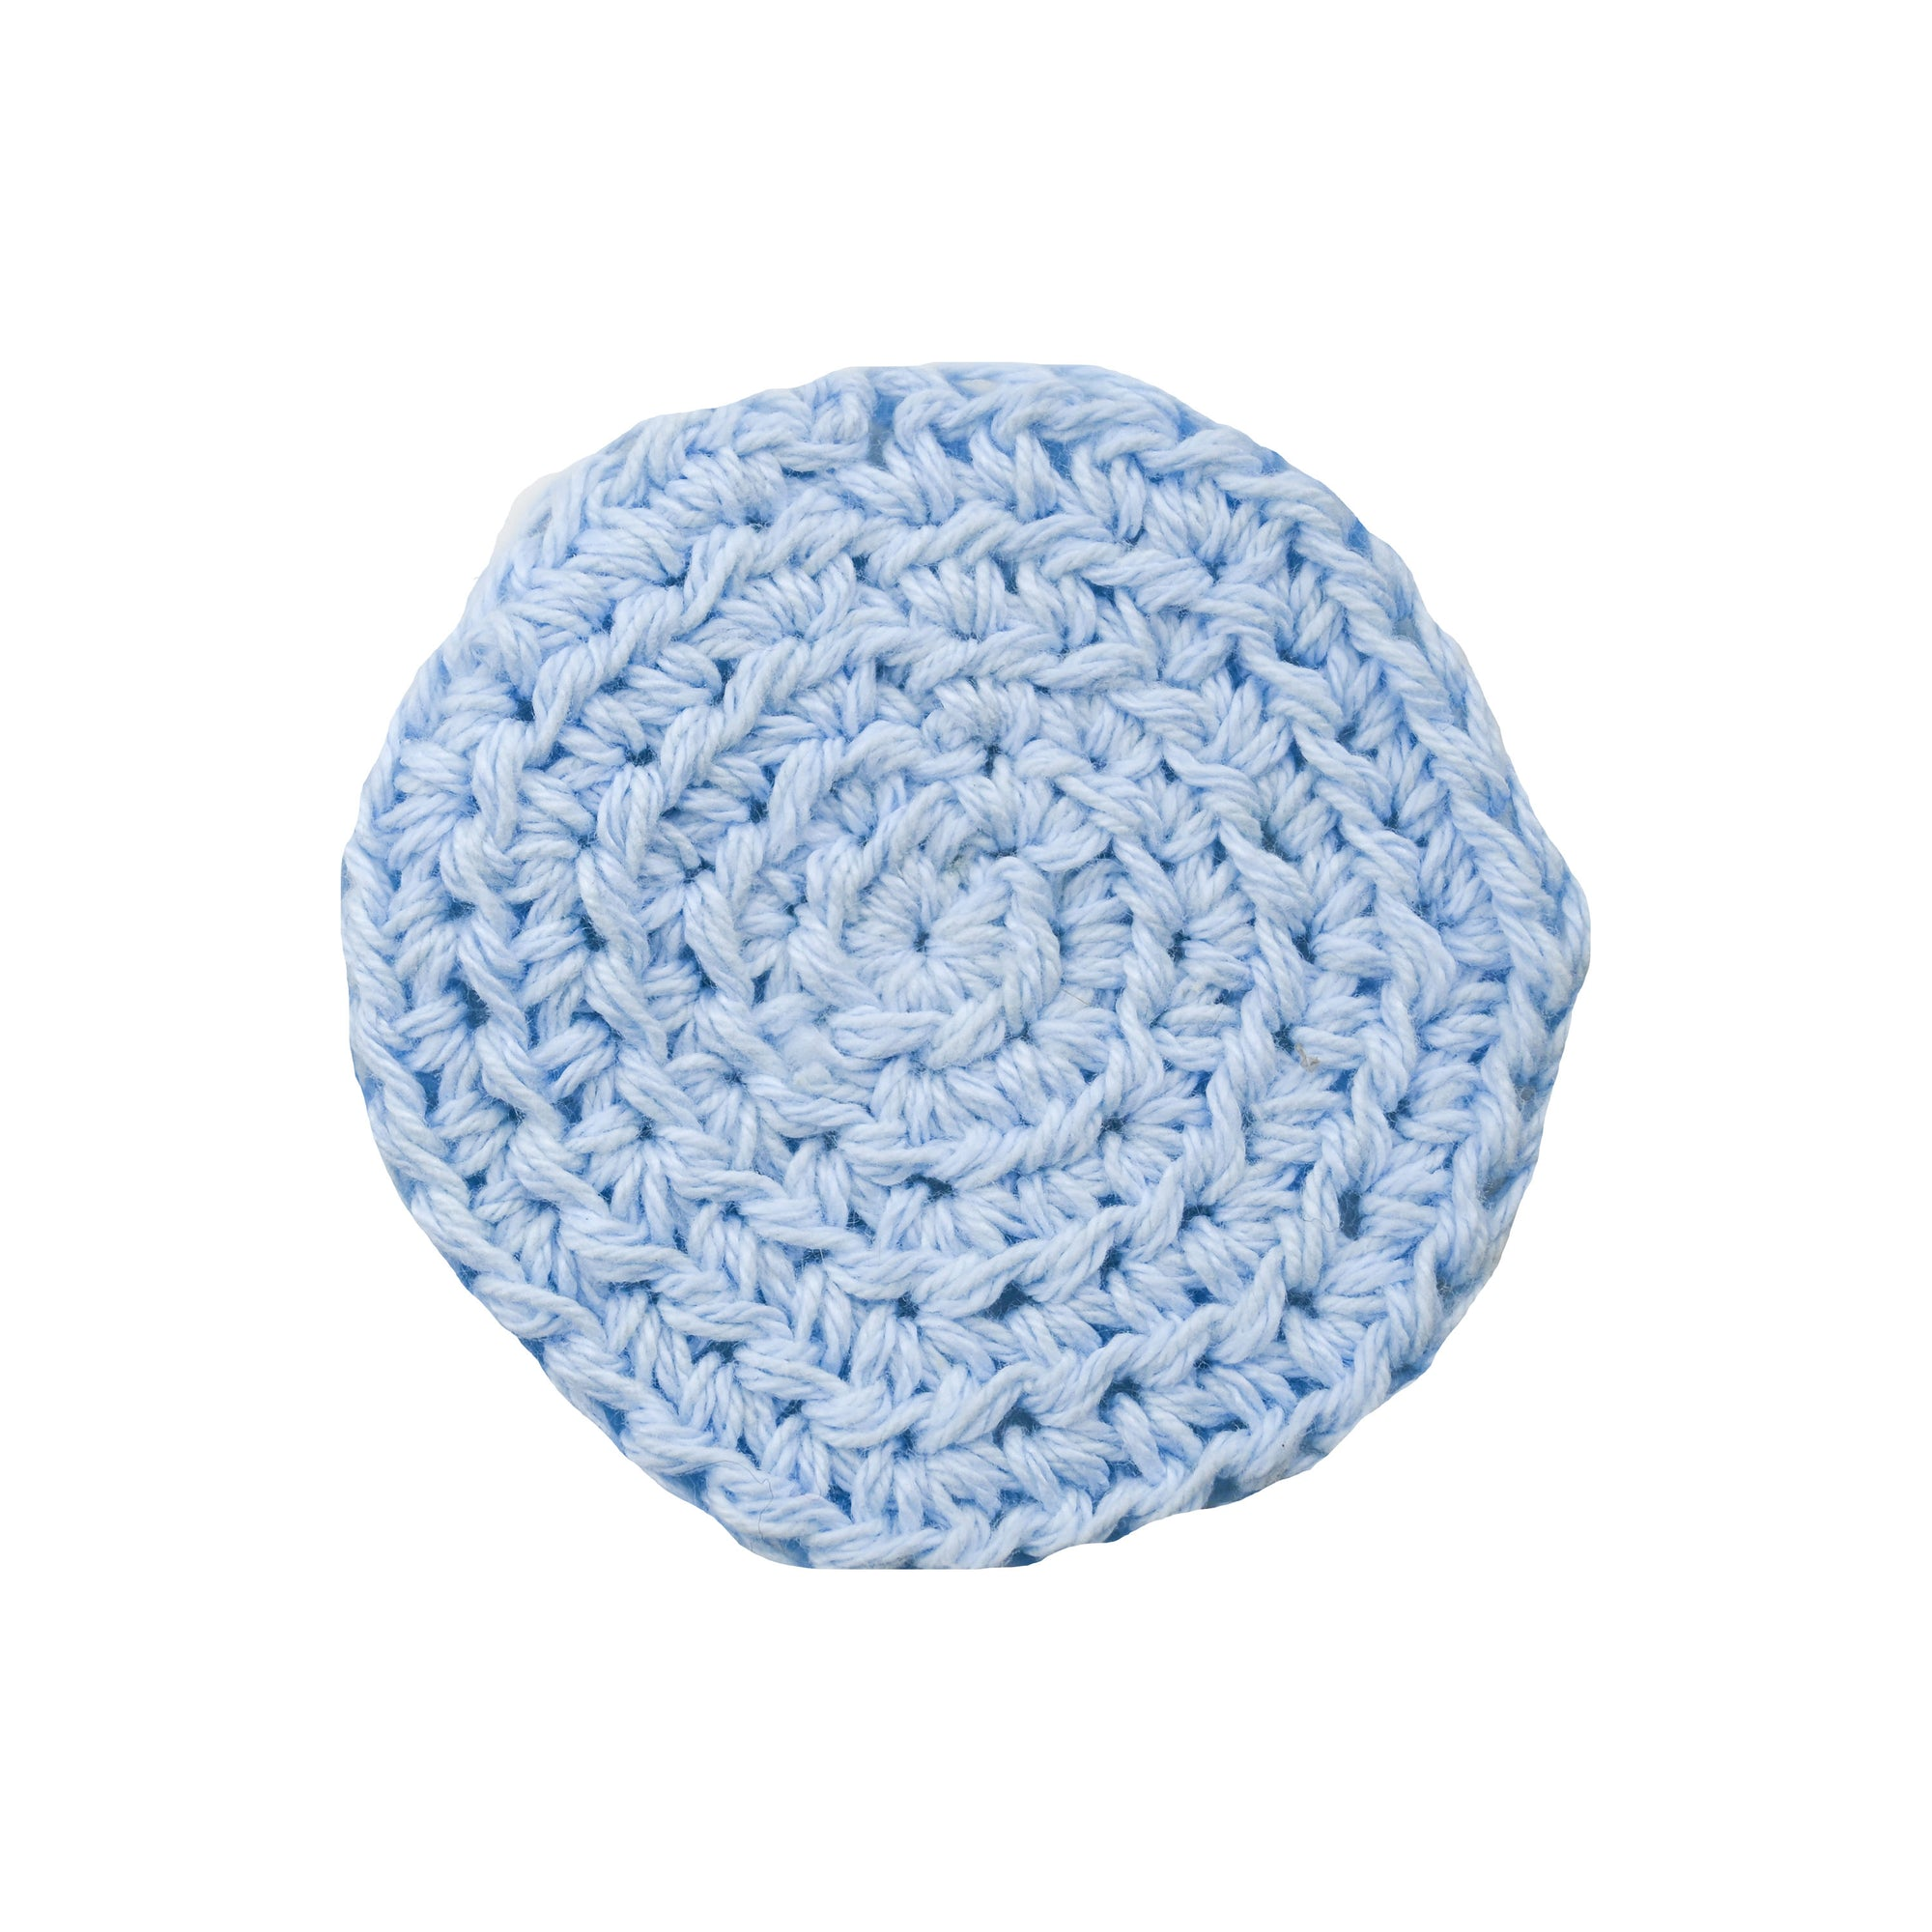 Blue Reusable Makeup Pads - Carys The World Bamboo Bottle Brush